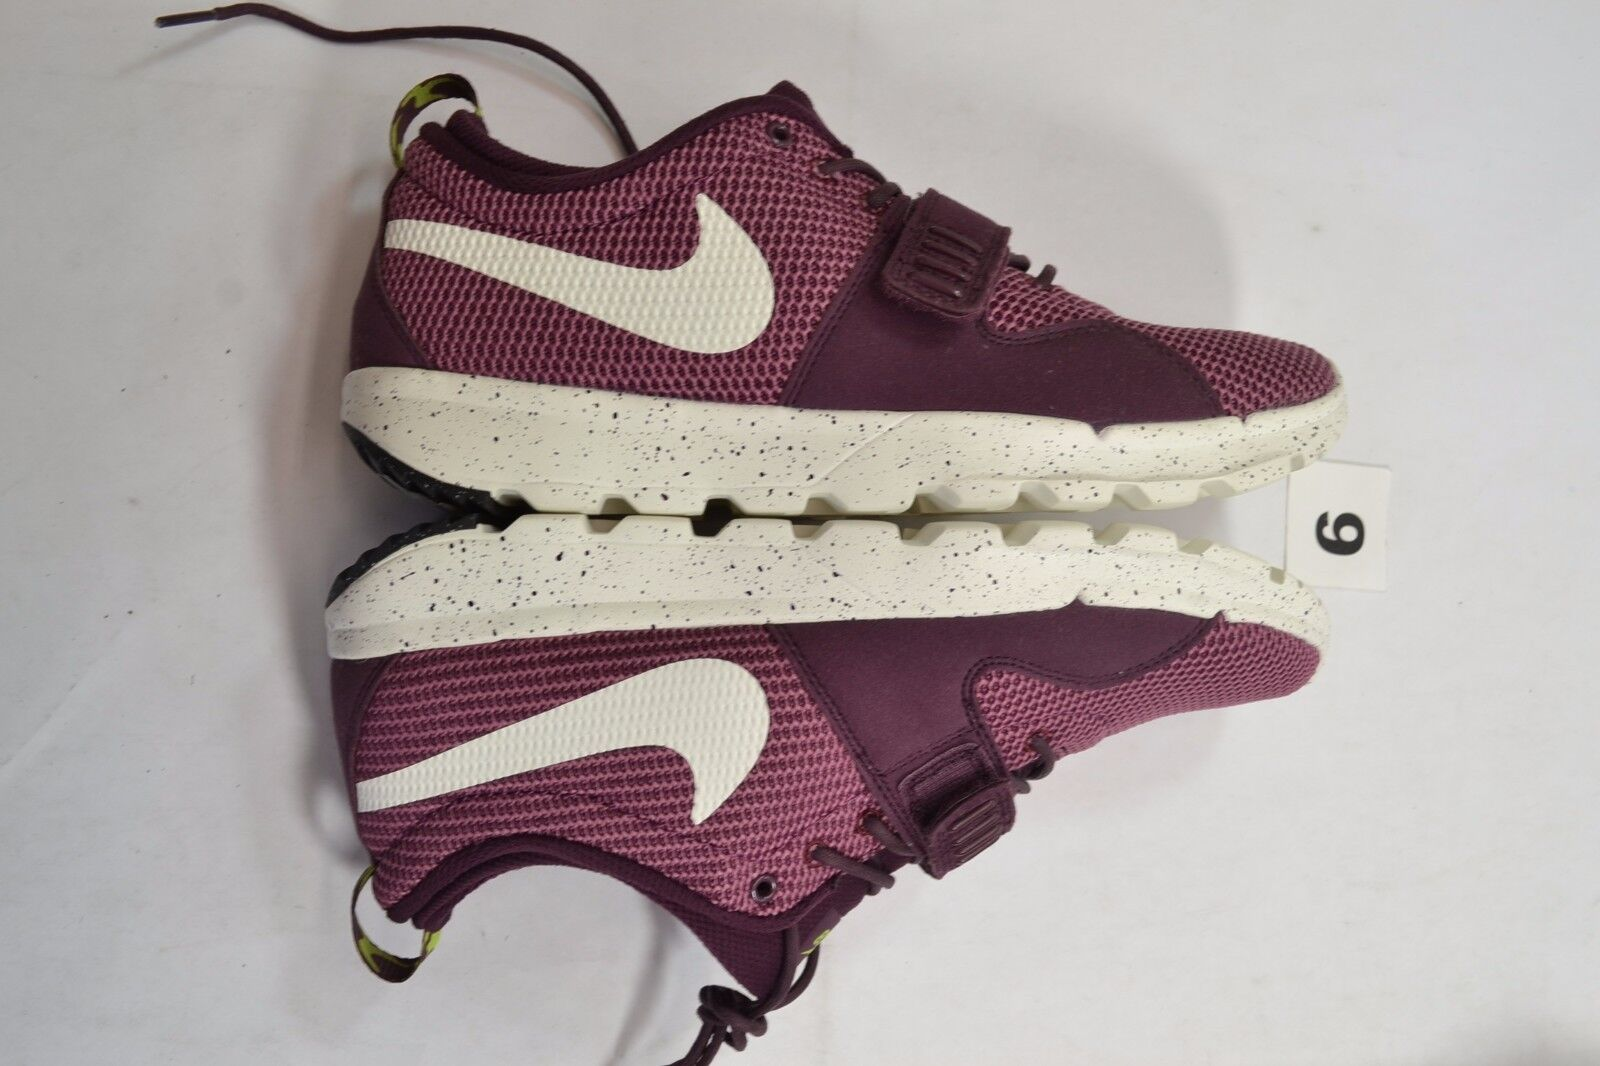 Nike TRAINERENDOR Merlot Sail Flash Lime Athletic Athletic Athletic Discounted (512) Men's shoes 69b37f